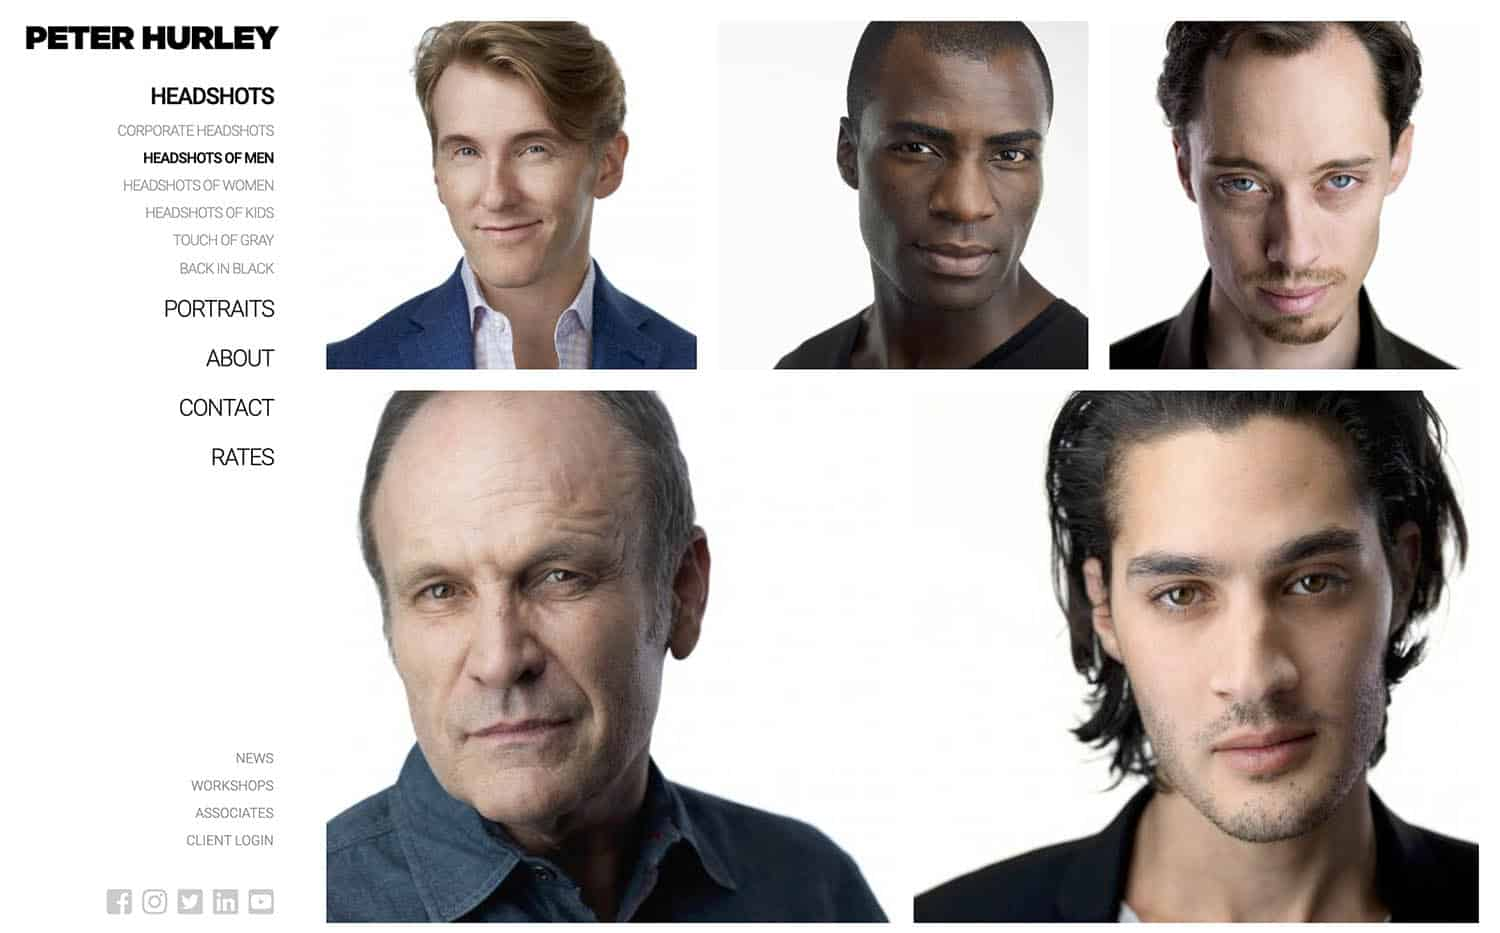 A page on Peter Hurley's website showcases headshots of men photographed in a studio against a white backdrop.